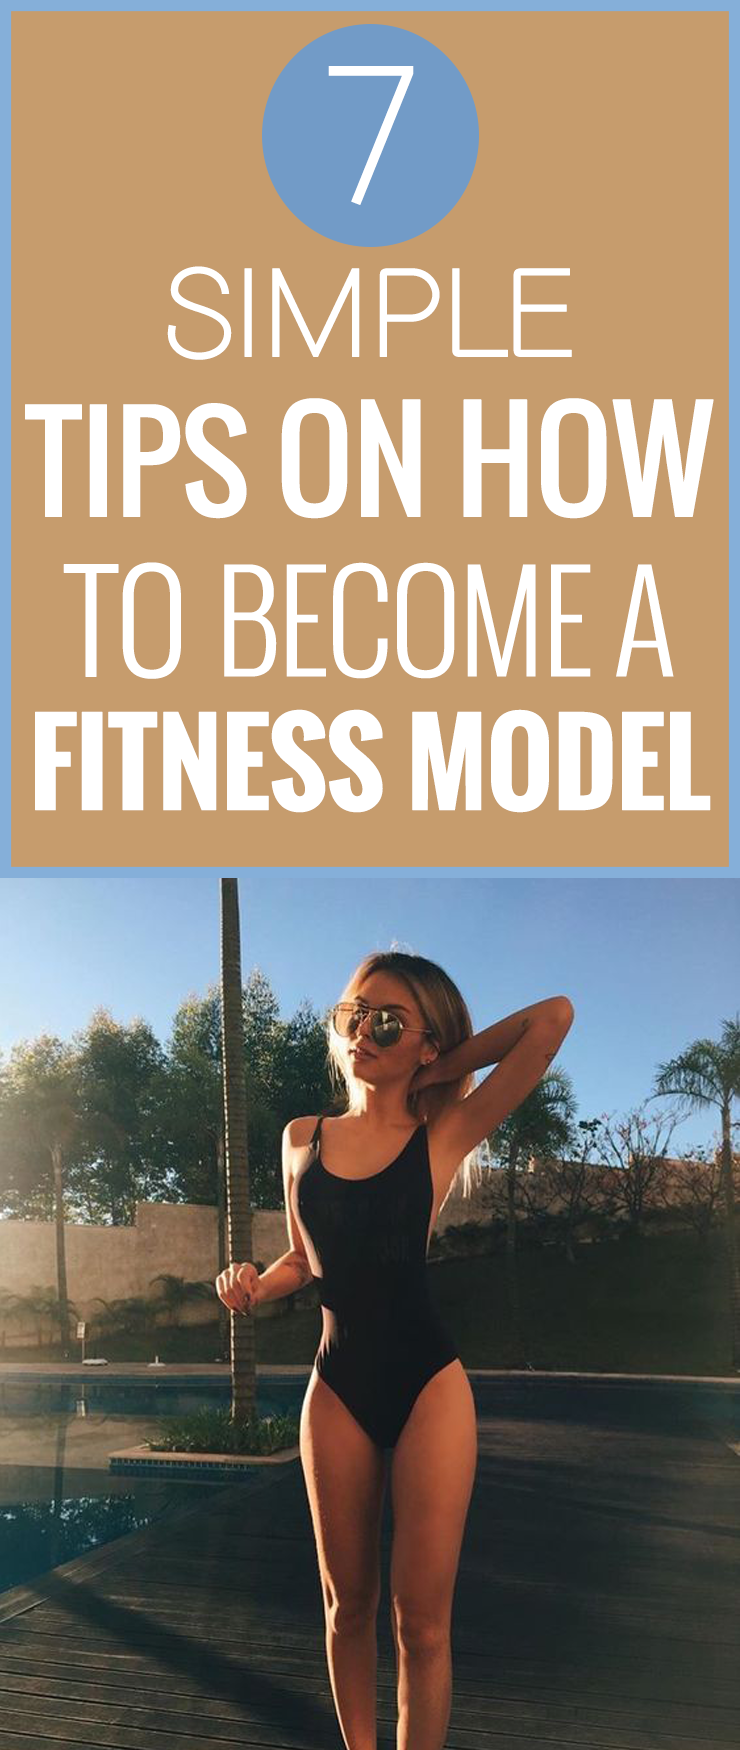 7 Simple Tips On How To Become A Fitness Model 7goodies Become A Fitness Model Fitness Model Fitness Instagram